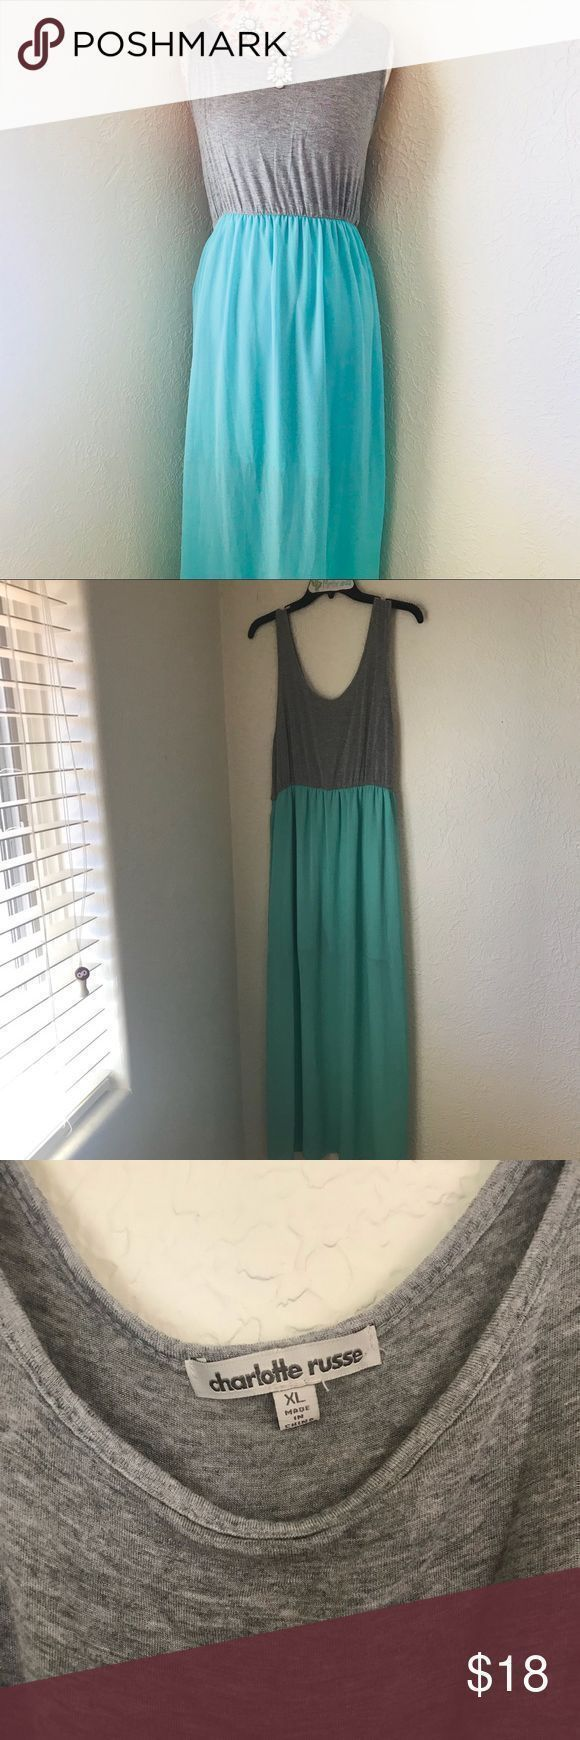 Grey & Mint Maxi-Kleid Größe XL  Charlotte Russe  graue dehnbare weiche #colorful  #photooftheday #cute  #picoftheday #beautiful  #pretty  #friends  #cool  #portrait  #skirt #dress #styleseat #fashiondaily #fashionbags #fashionpria #mittellangeröcke Grey & Mint Maxi-Kleid Größe XL  Charlotte Russe  graue dehnbare weiche #colorful  #photooftheday #cute  #picoftheday #beautiful  #pretty  #friends  #cool  #portrait  #skirt #dress #styleseat #fashiondaily #fashionbags #fashionpria #mittellangeröcke